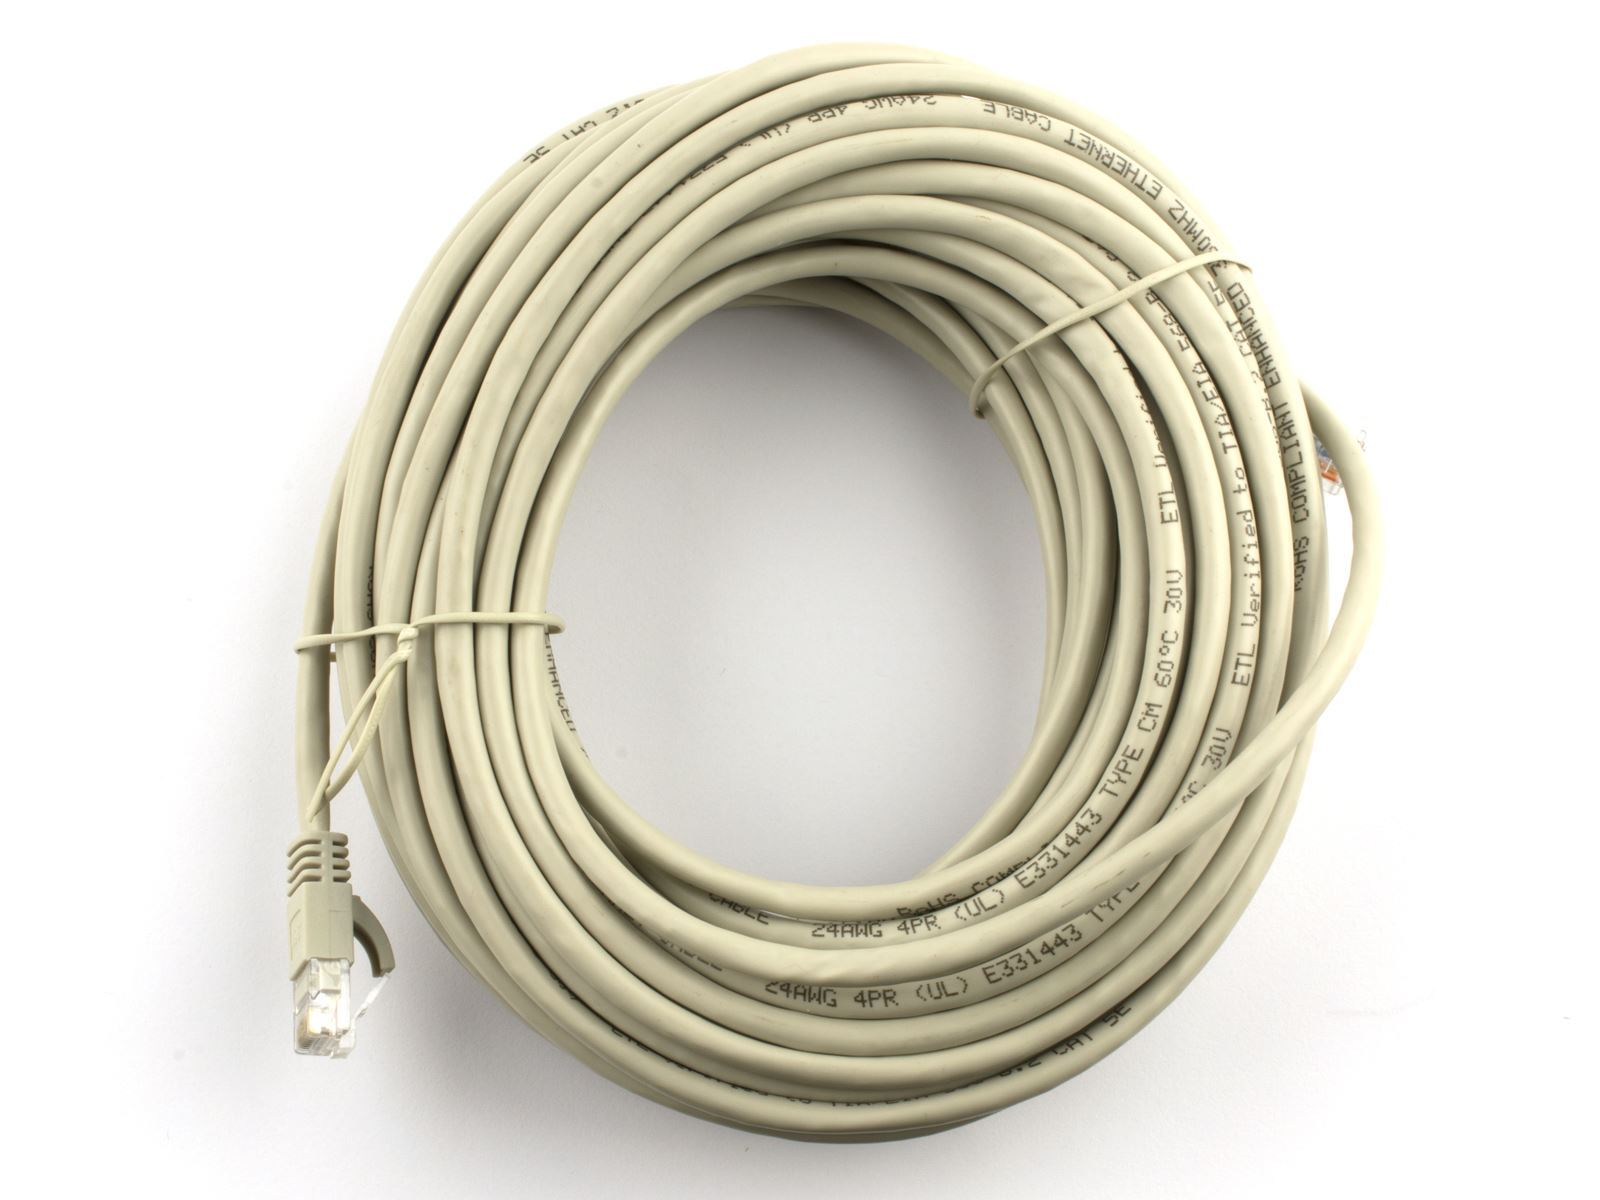 Networx 50 ft booted cat5e network patch cable gray booted picture of cat5e patch cable 50 ft gray booted publicscrutiny Image collections